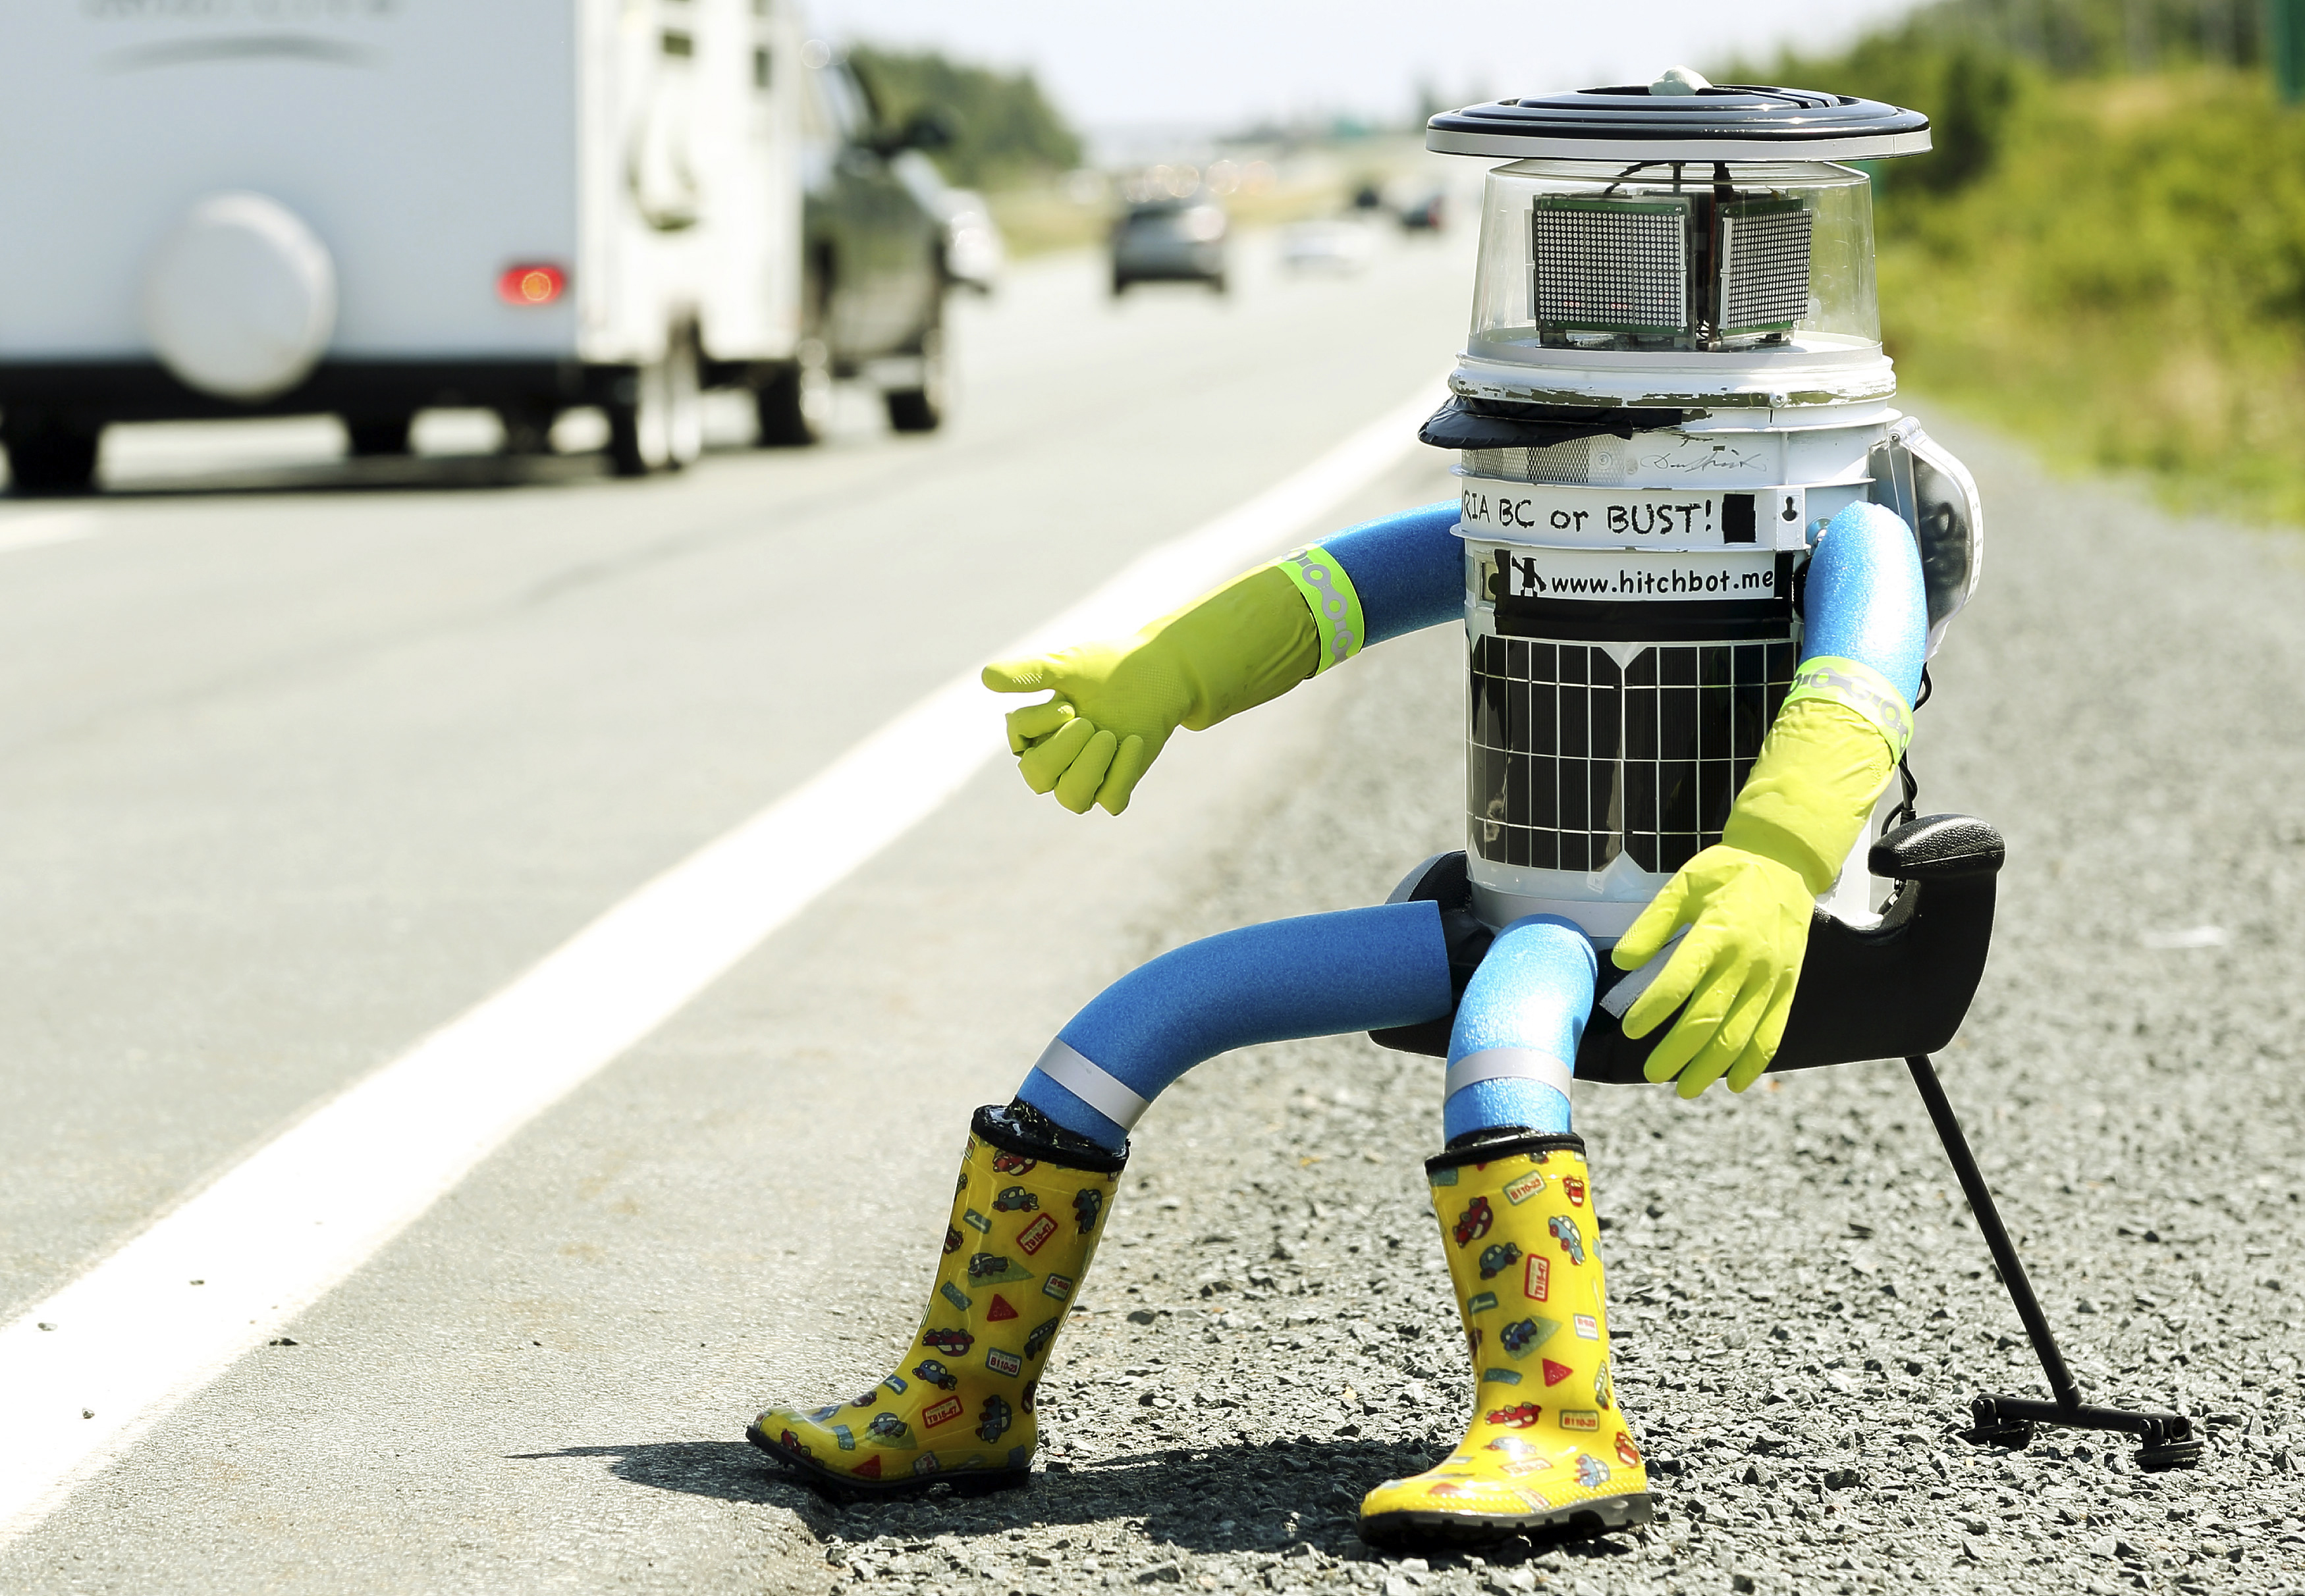 The anthropomorphic robot named hitchBOT, seen here during its cross-Canada trek in 2014, was destroyed on Aug. 1, 2015 two weeks into its attempted trip across the U.S., according to its creators